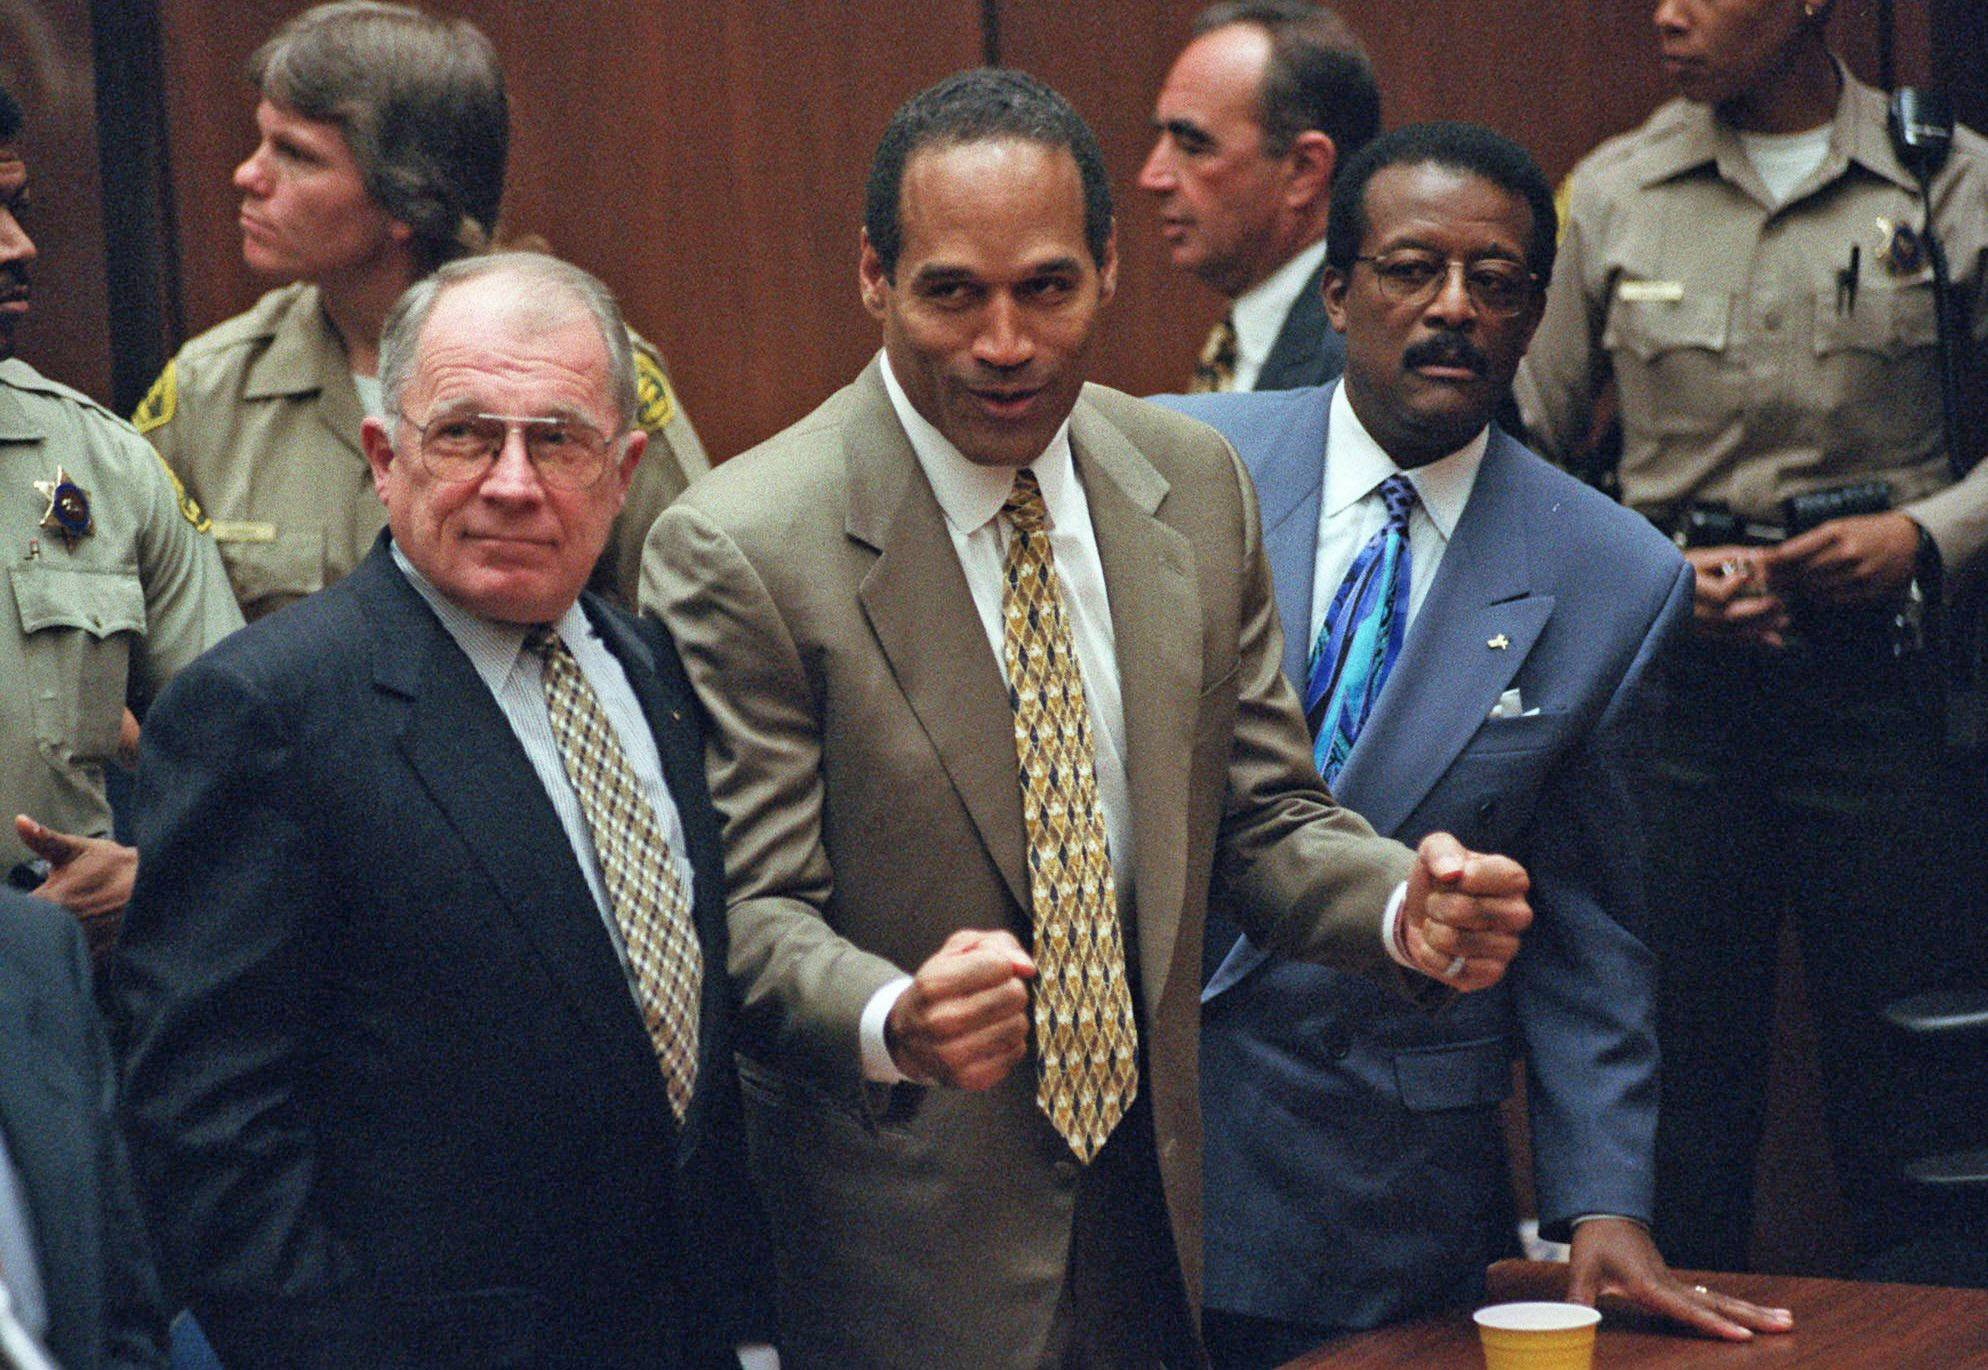 O.J. Simpson reacts to being found not guilty of murdering his ex-wife Nicole Brown Simpson and Ron Goldman as he stands between defense attorneys F. Lee Bailey, left, and Johnnie Cochran Jr. on Oct. 3, 1995. Later found liable of the murders in civil court, Simpson now is in a Nevada prison on robbery charges.